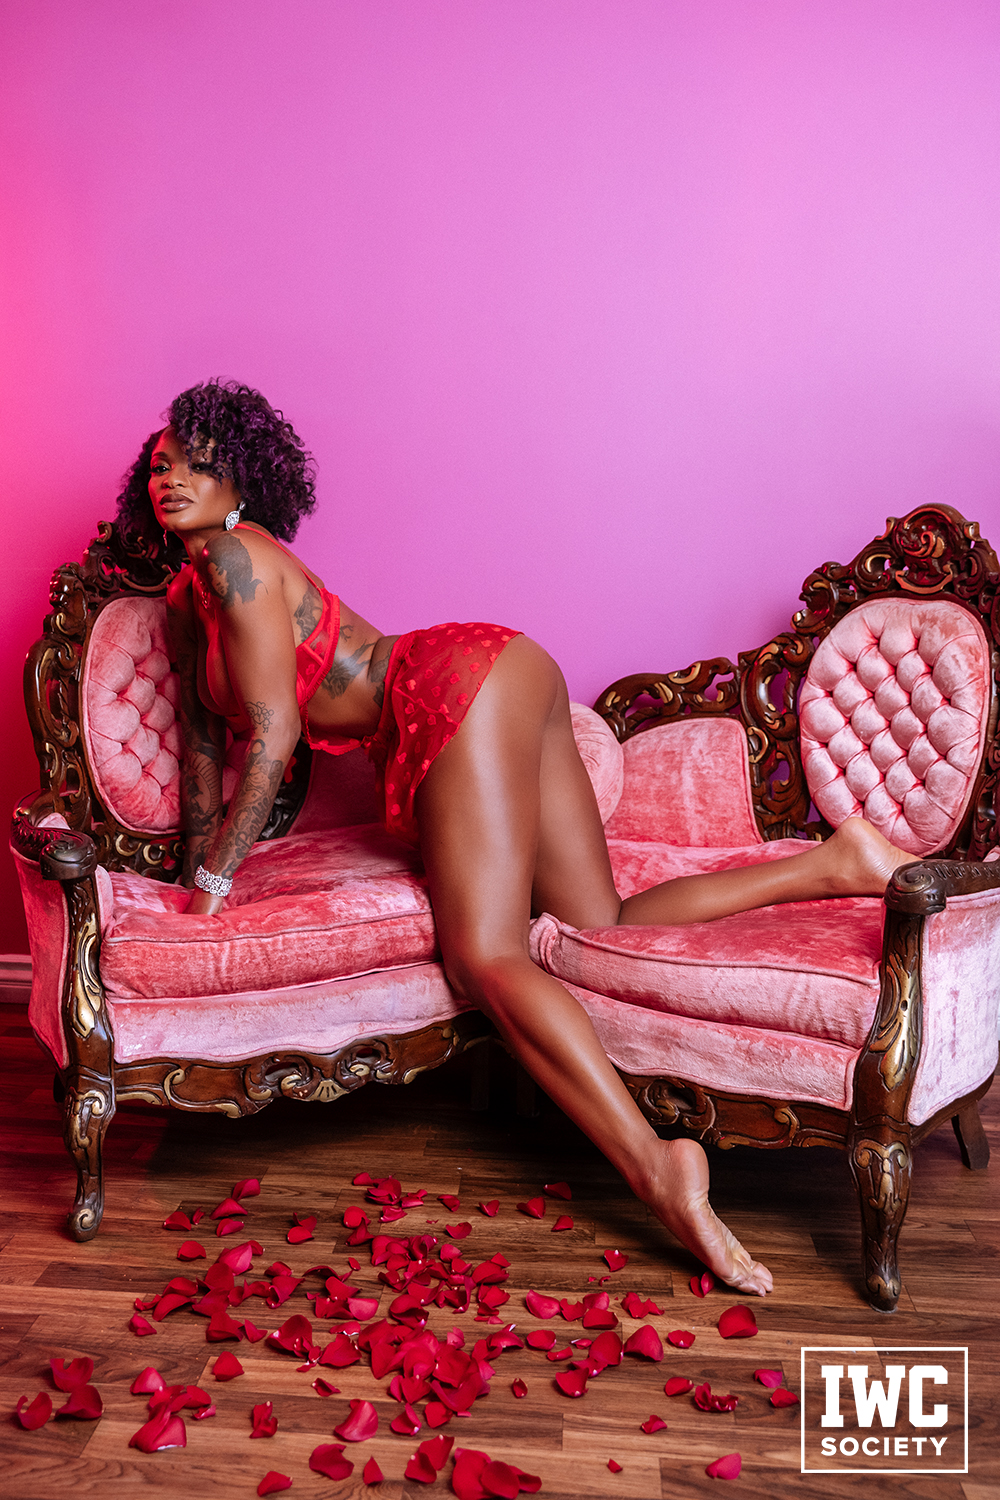 Ebony tattooed queen bending forward on pink sofa chairs